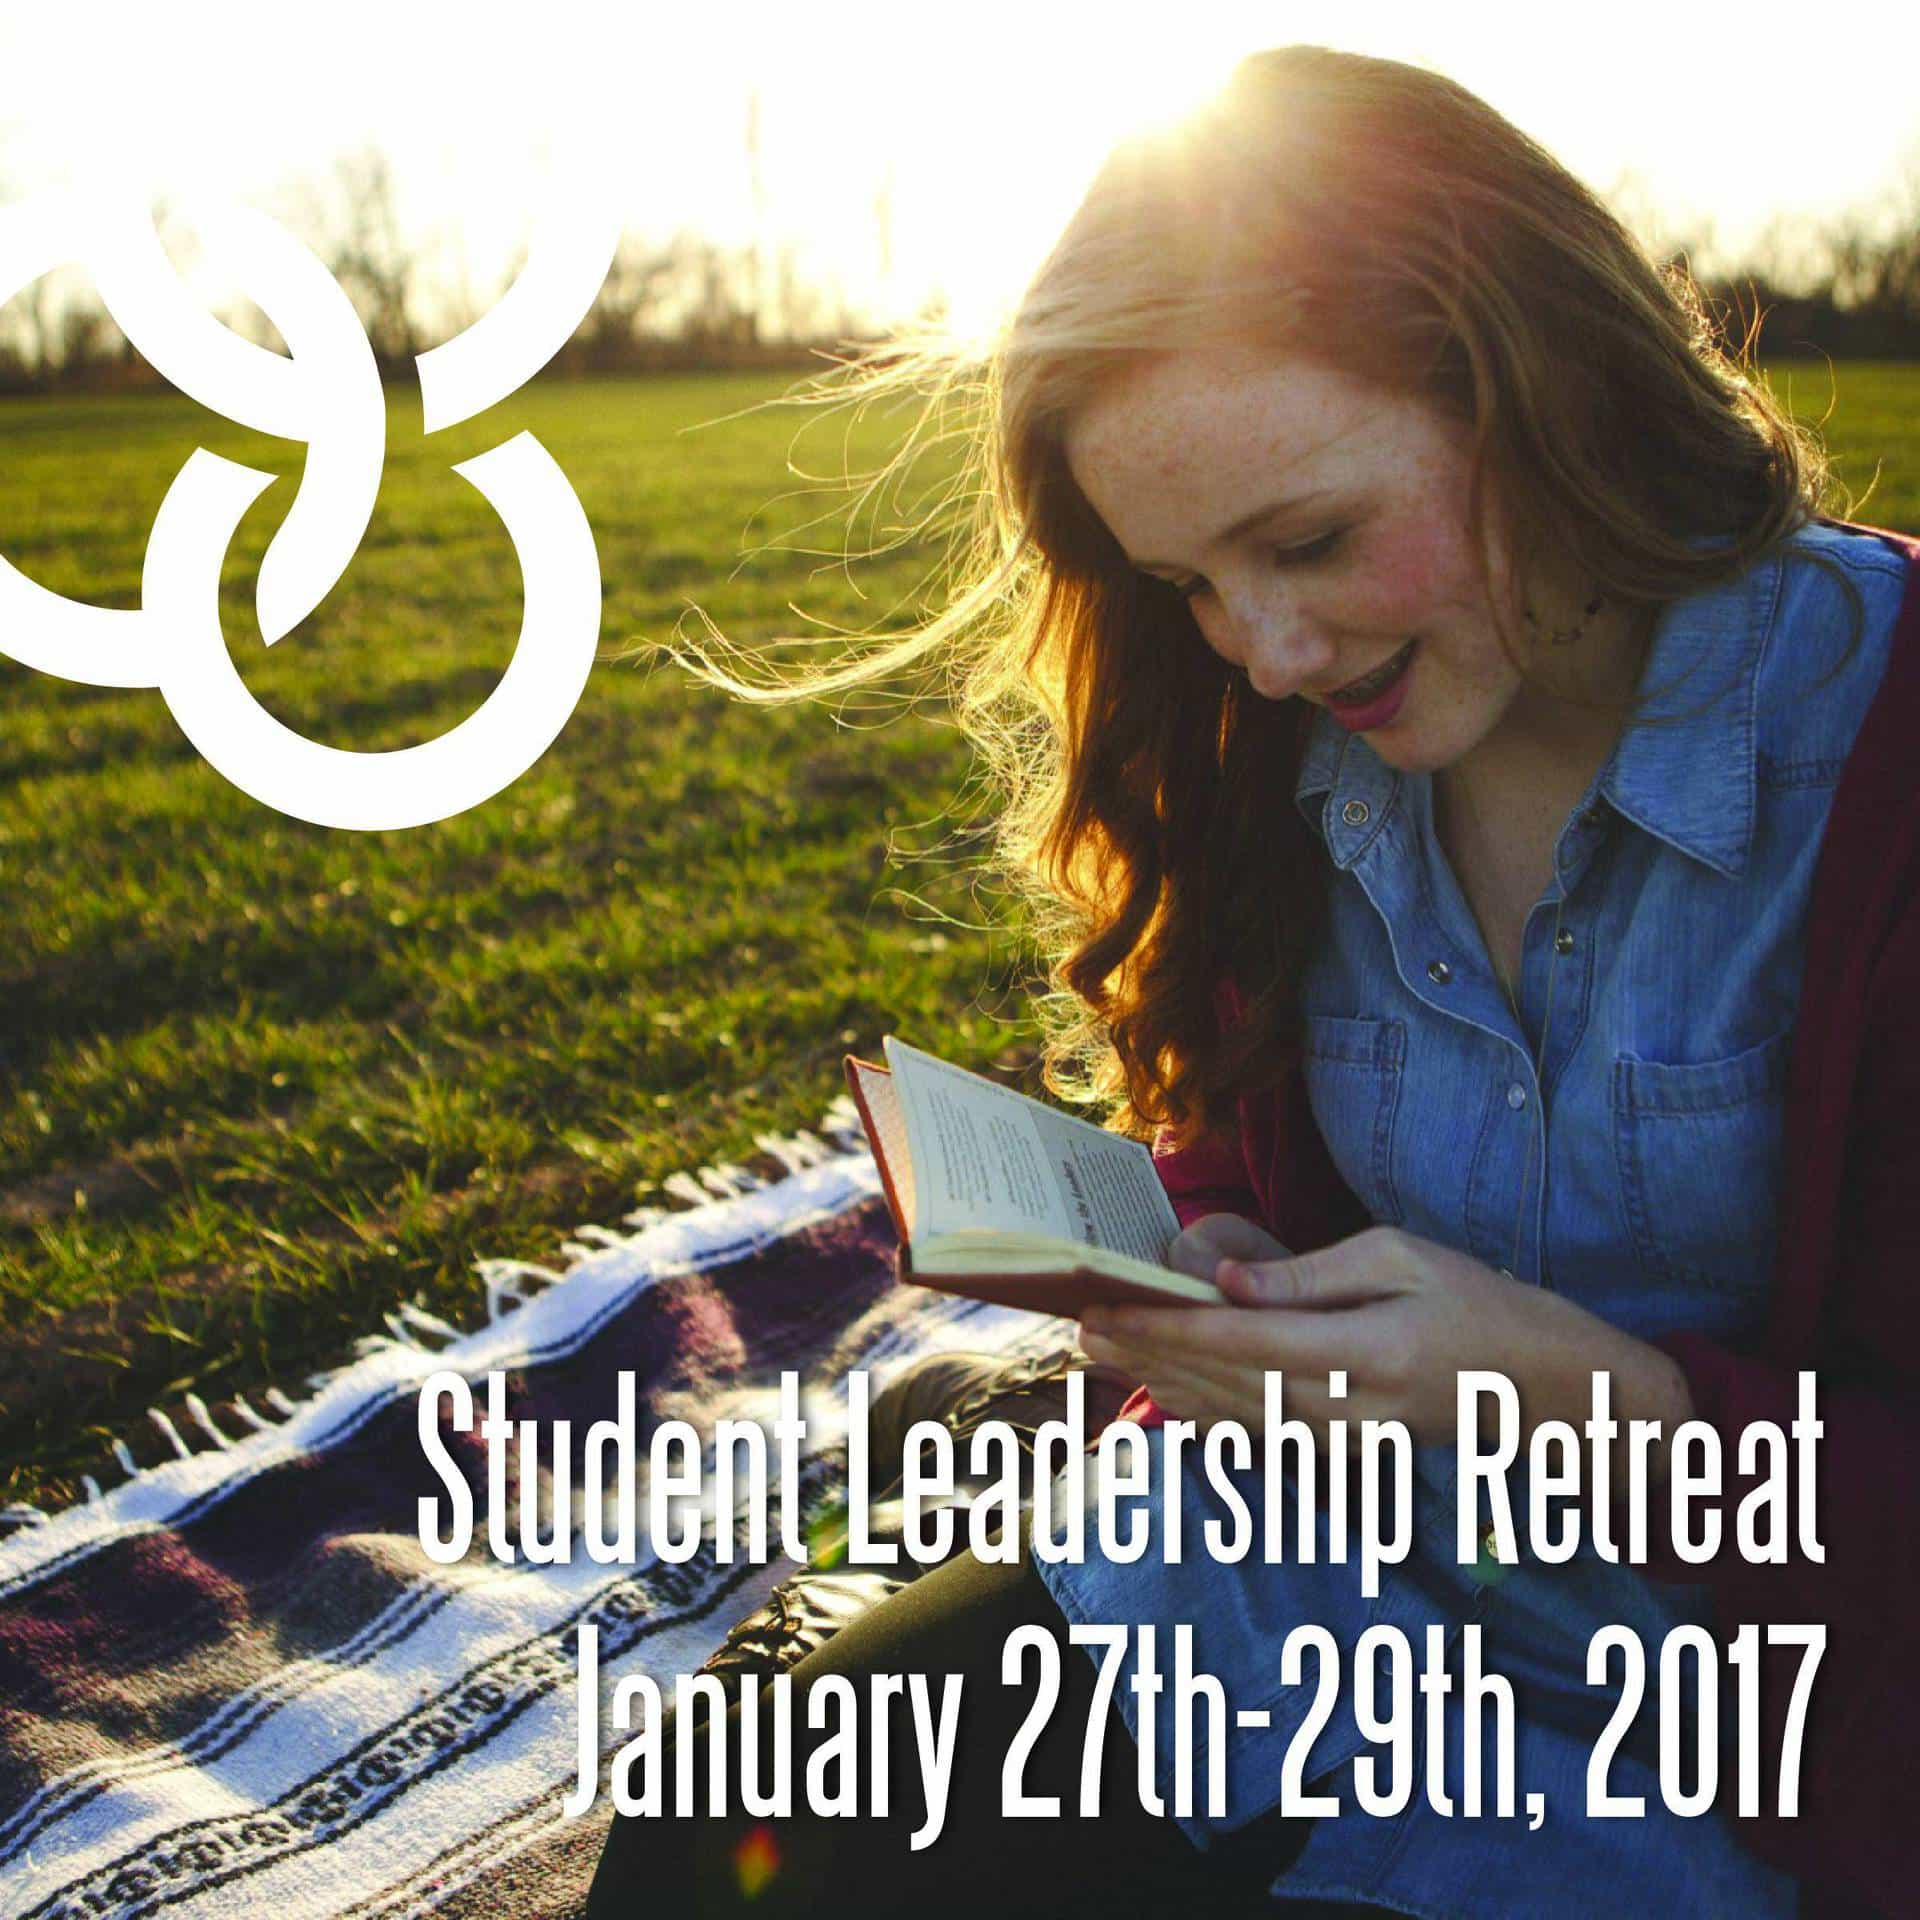 Student Leadership Retreat January 25th-27th 2017